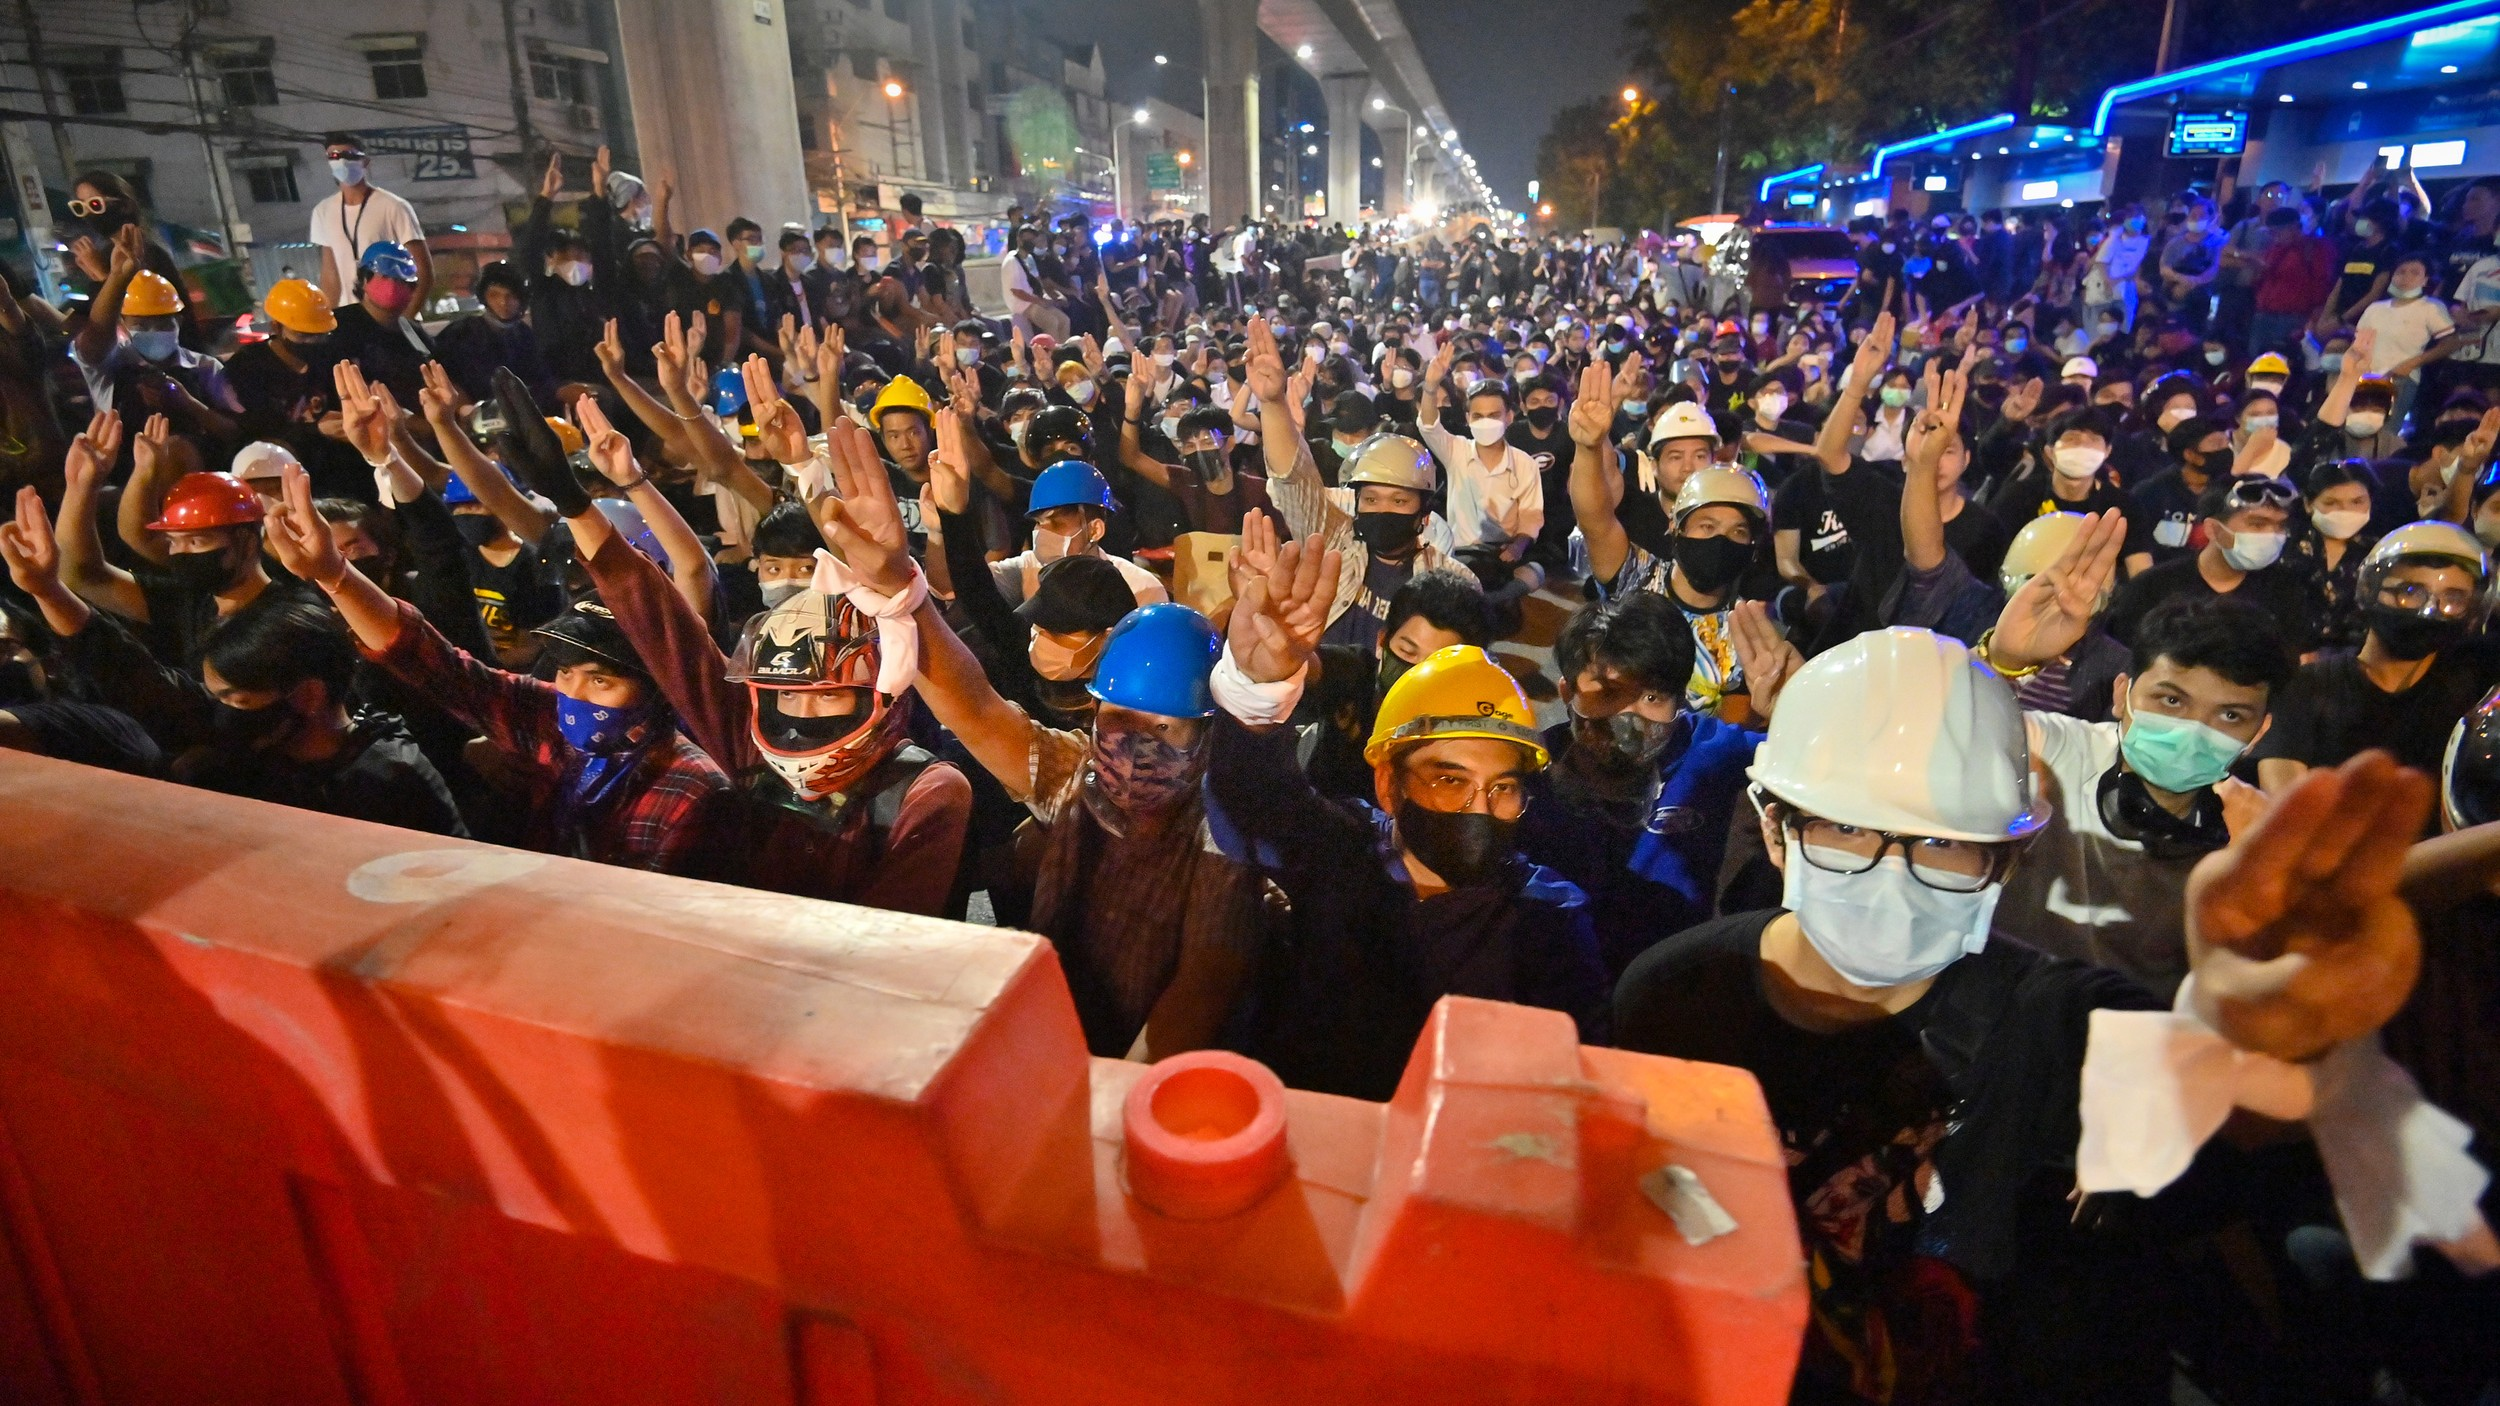 Pro-democracy protesters give the three-finger salute as they sit behind barricades during an anti-government rally at Kaset intersection in Bangkok, Oct. 19, 2020.